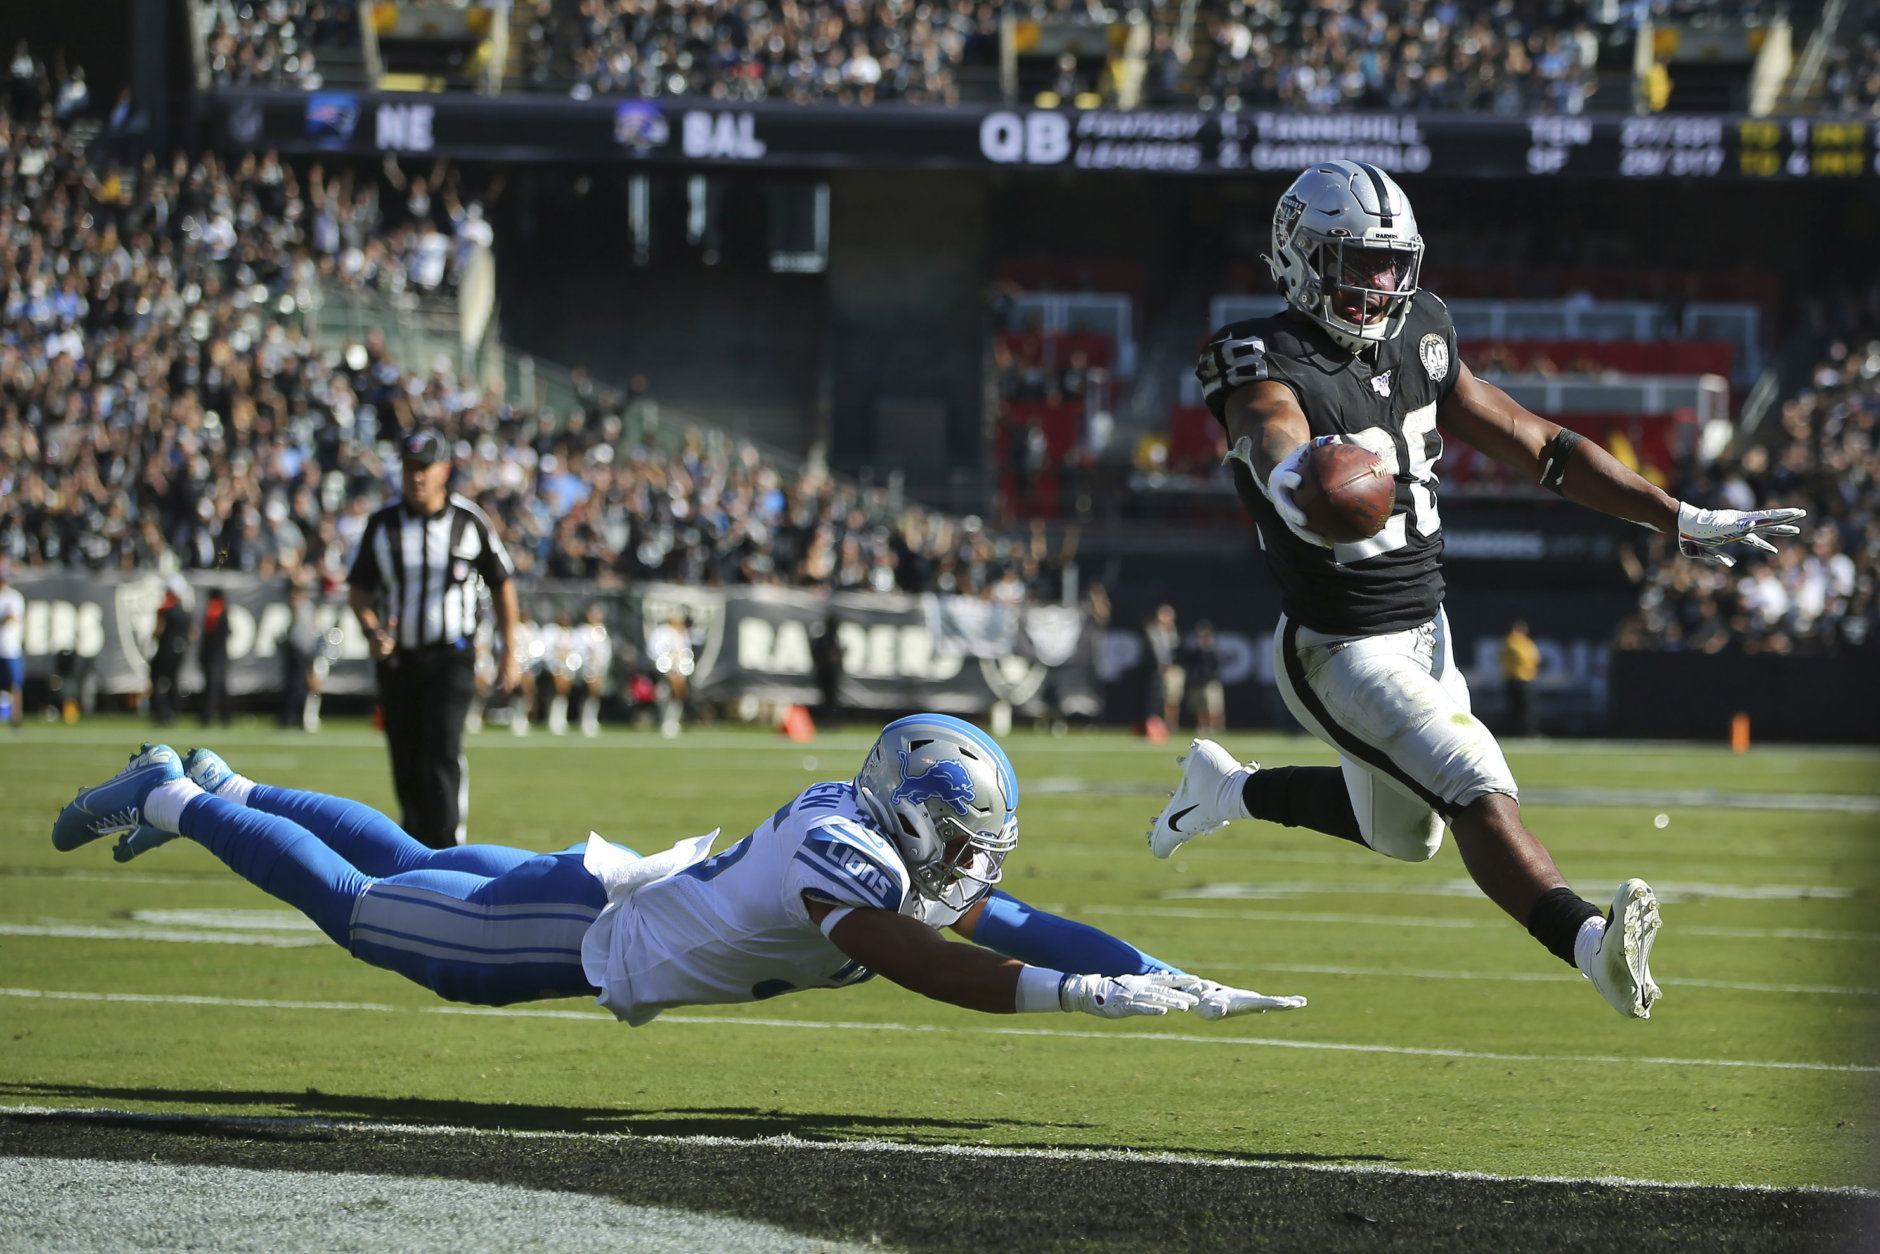 """<p><b><i>Lions 24</i></b><br /> <b><i>Raiders 31</i></b></p> <p>Josh Jacobs continues to <a href=""""https://twitter.com/ESPNStatsInfo/status/1191120187157815296?s=20"""">put his name among the greats</a> while carrying the Raiders to a better-than-expected final season in Oakland. Maybe trading Khalil Mack wasn&#8217;t so bad after all.</p>"""